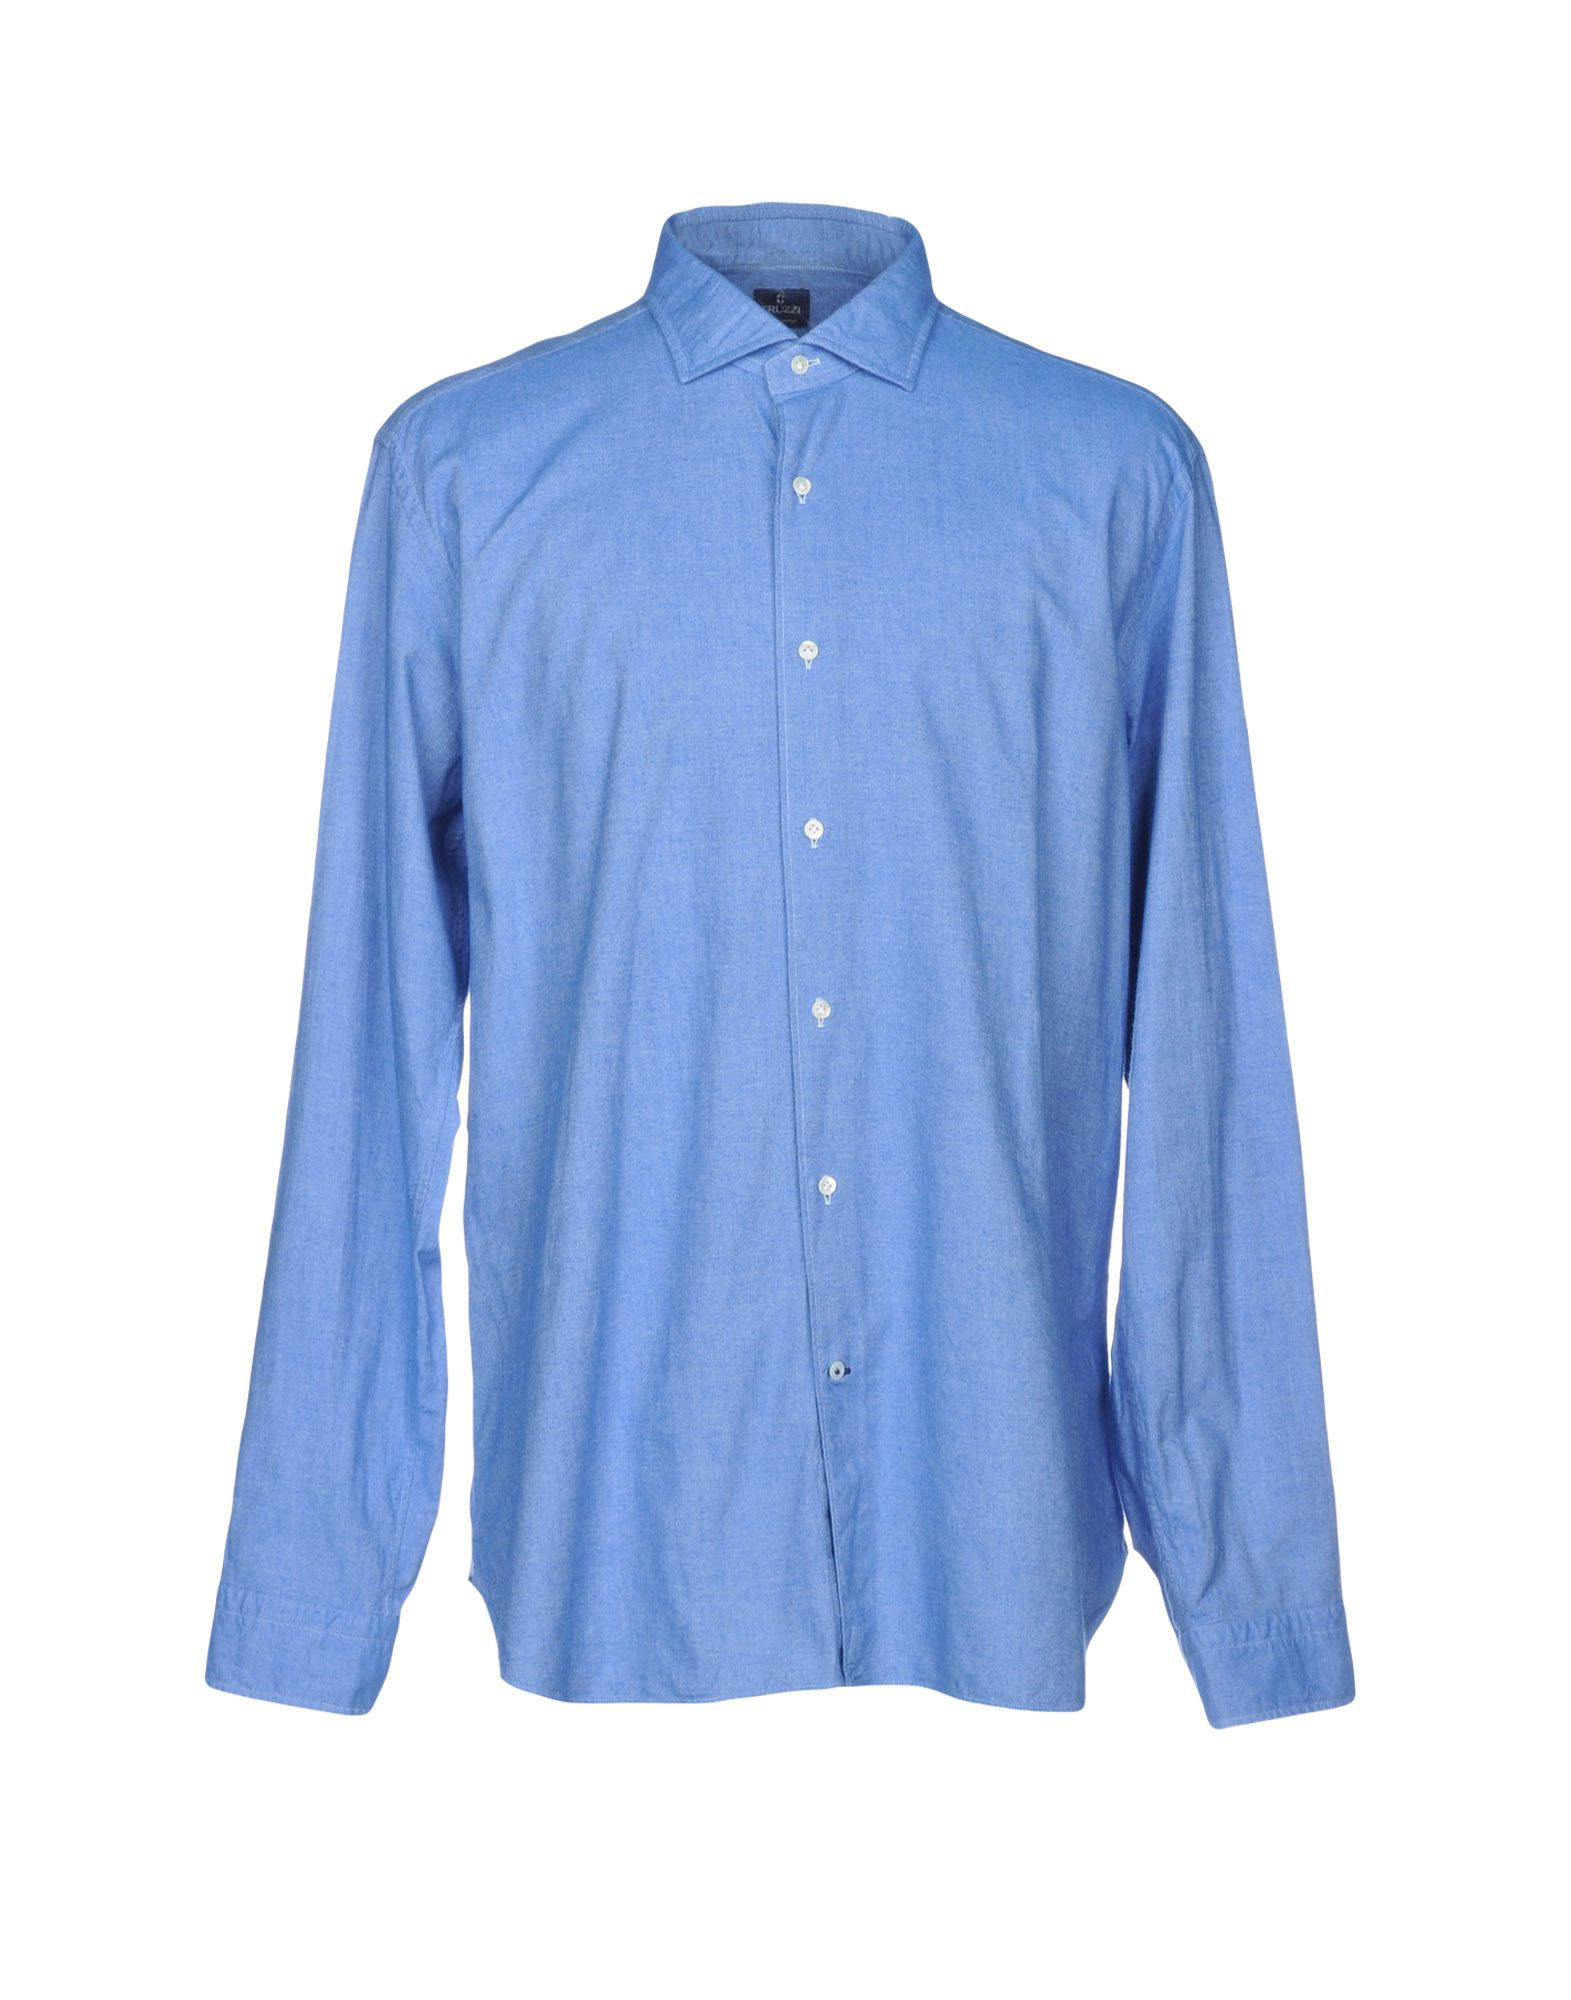 TRUZZI Solid Color Shirt in Azure